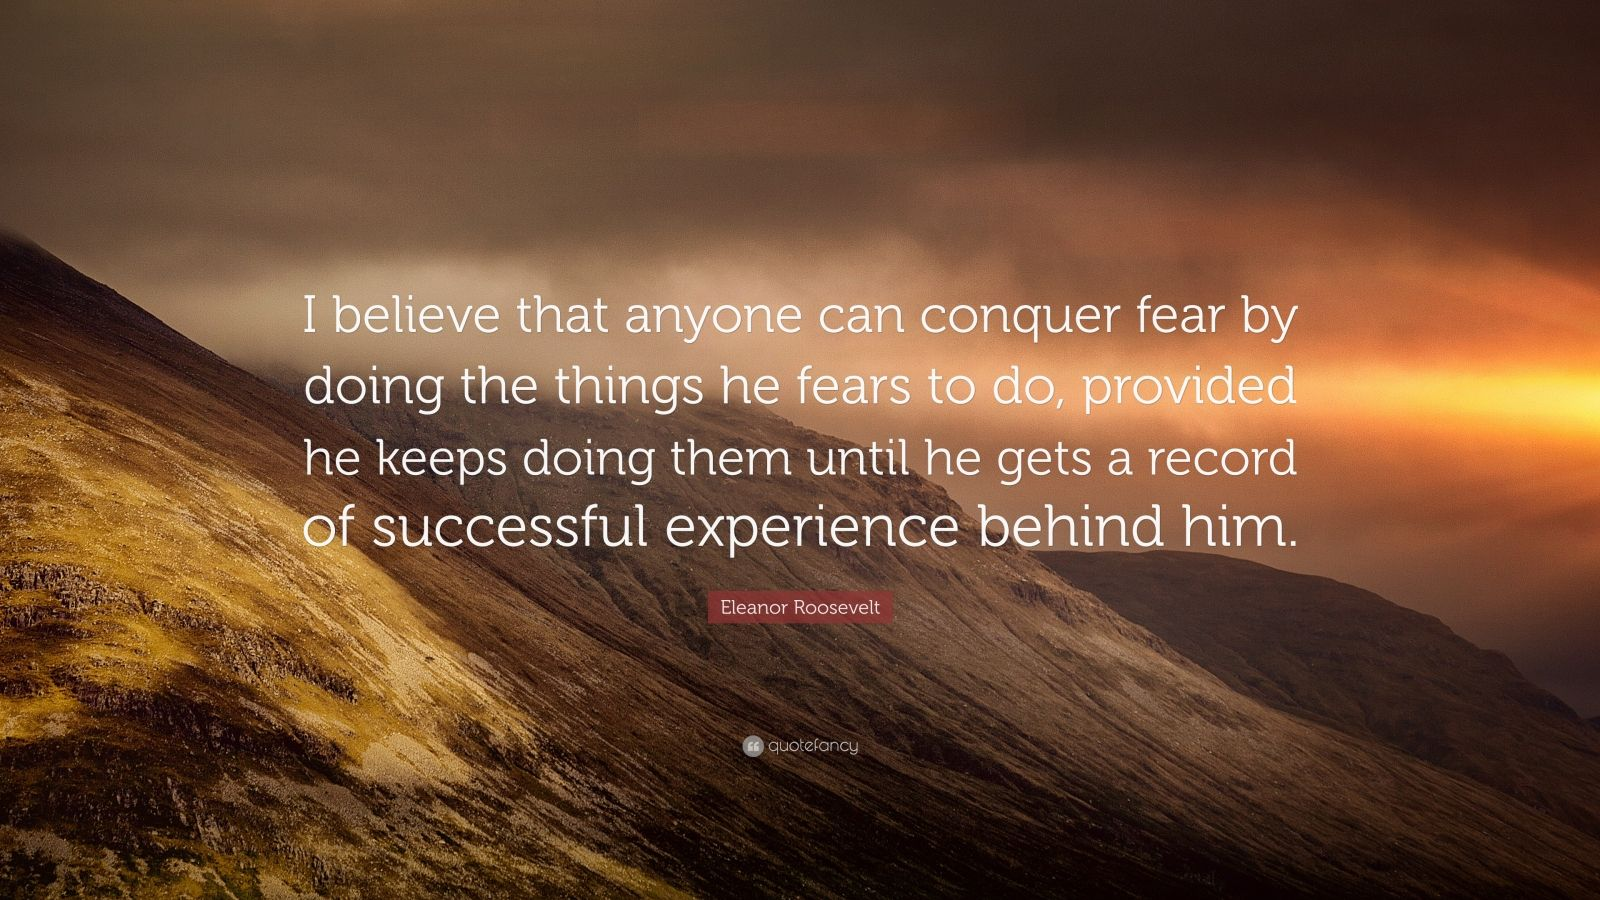 """Eleanor Roosevelt Quote: """"I believe that anyone can conquer fear by doing the things he fears to do, provided he keeps doing them until he gets a record of successful experience behind him."""""""